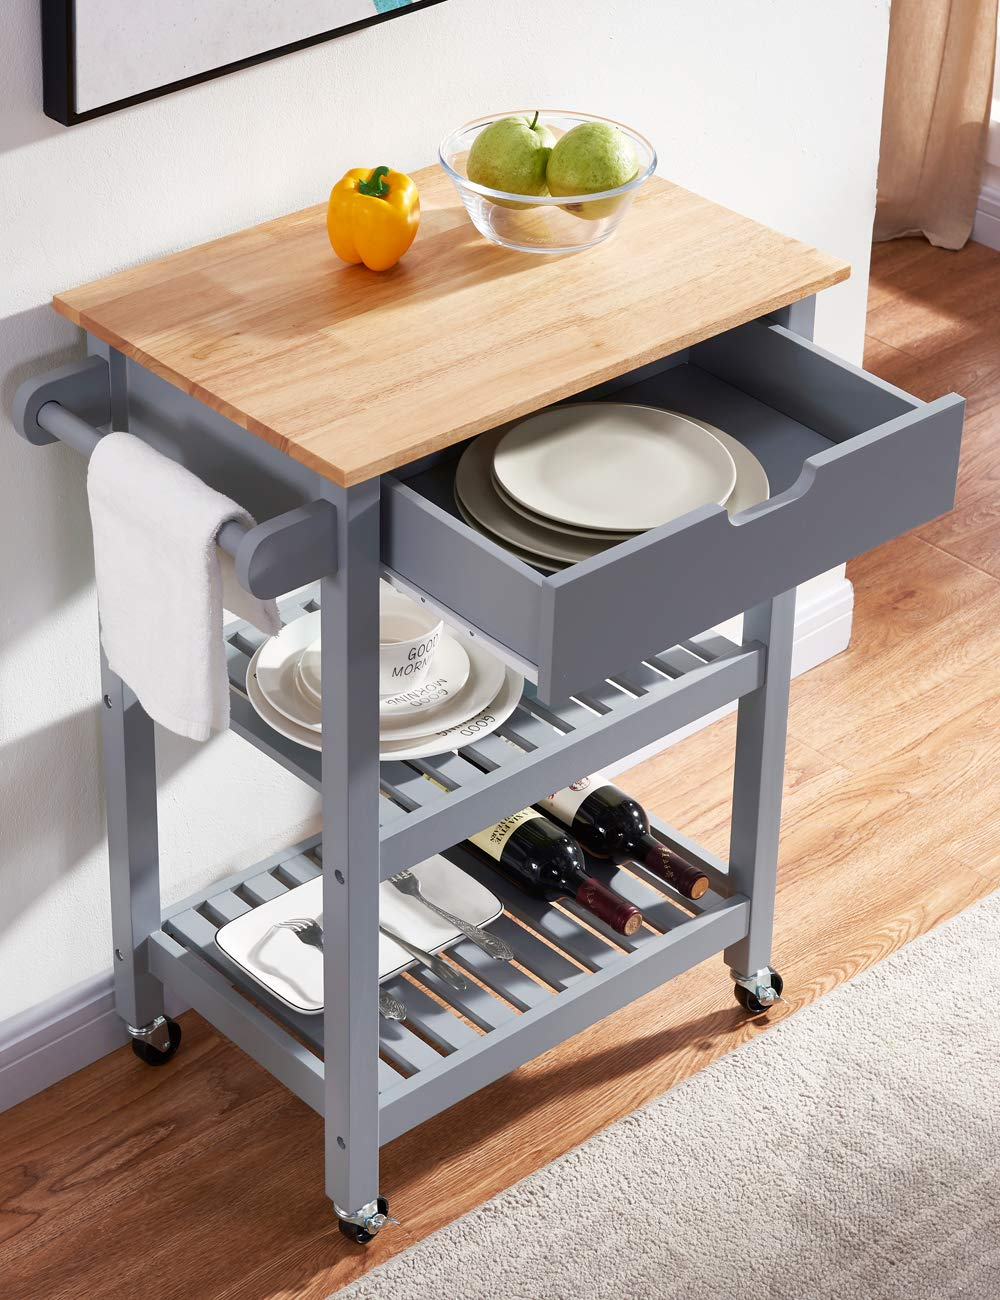 Linio-home Rolling Kitchen Island Cart with Wheels, Grey Kitchen Cart with Storage and Drawers, Small Moveable Bar/Microwave Cart for Dining Rooms Kitchens and Living Rooms by Linio-home